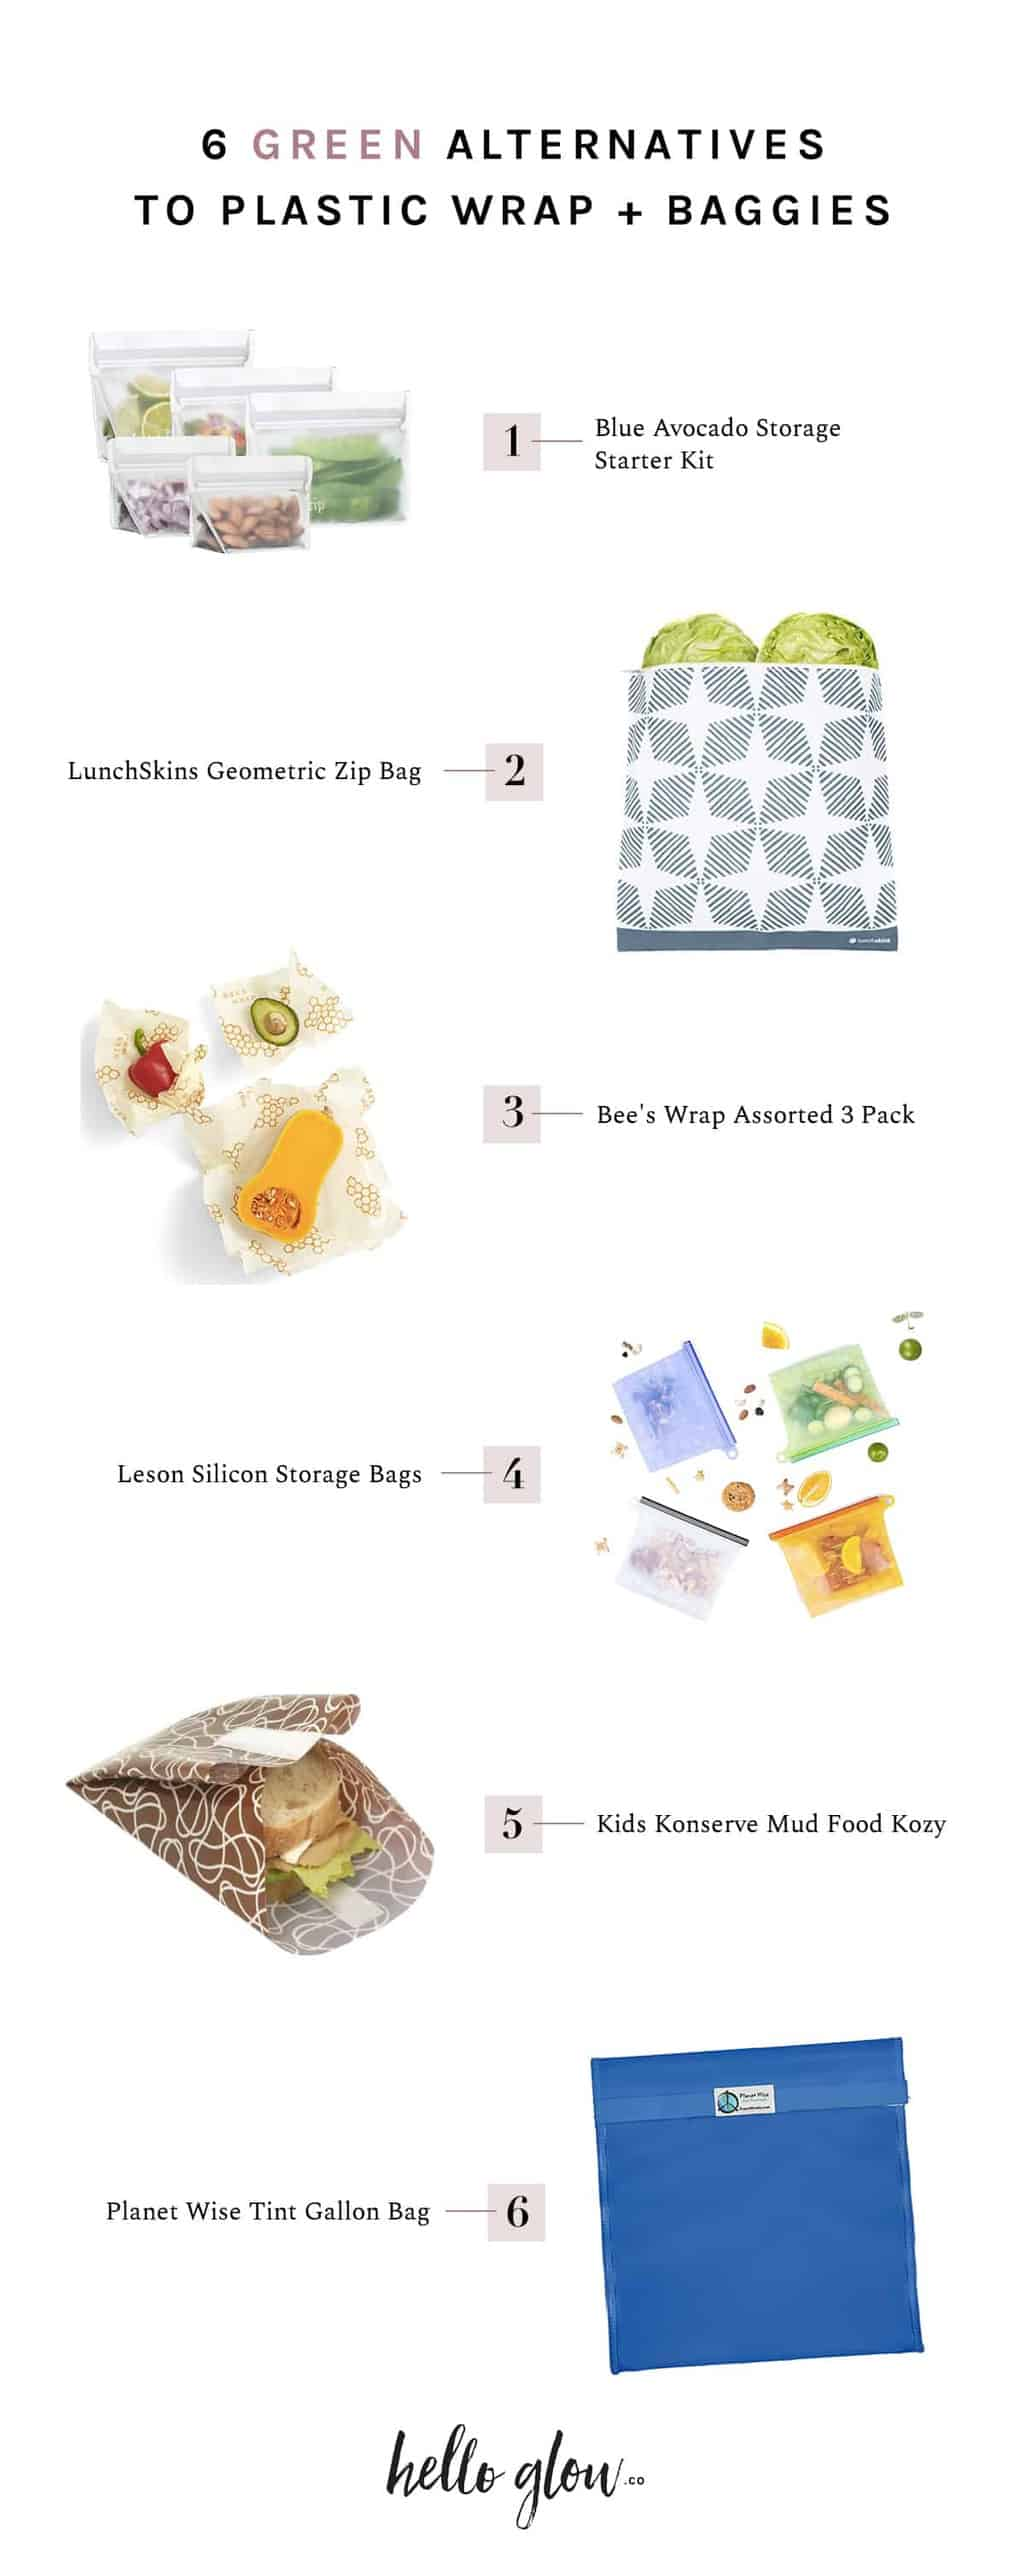 6 Green Alternatives to Plastic Wrap & Baggies